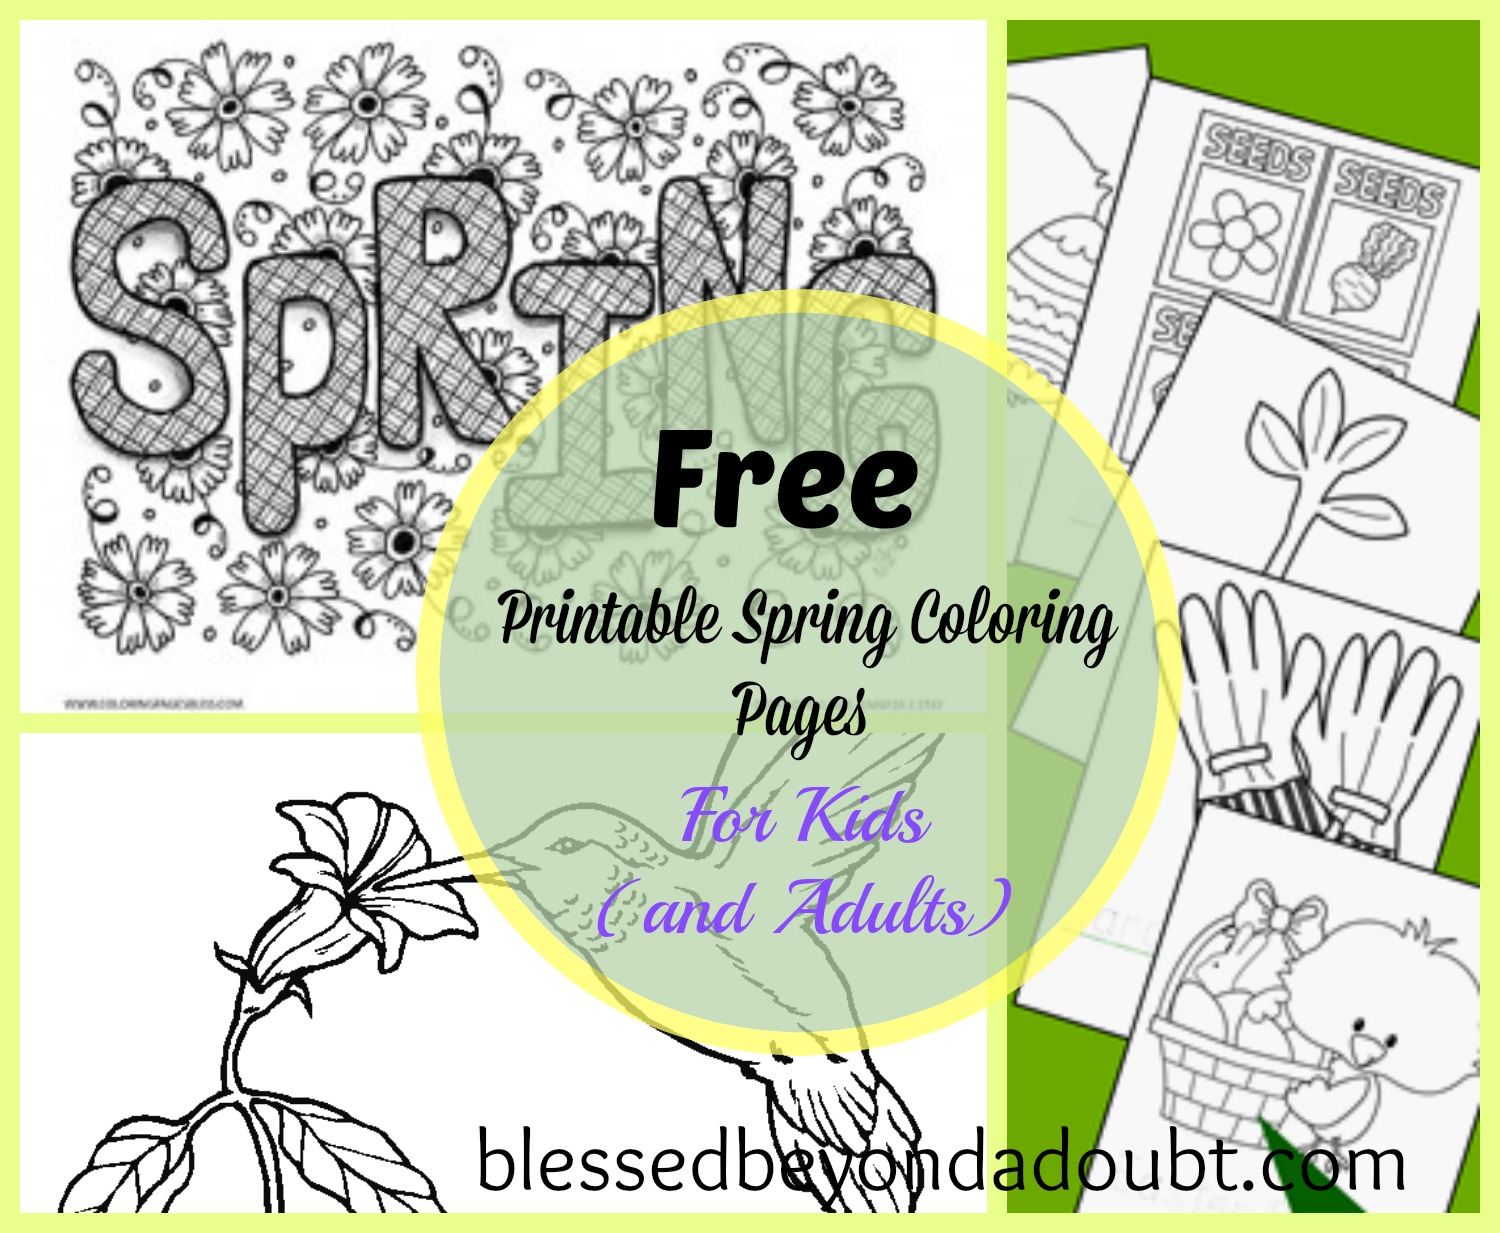 1500x1233 Exploit Free Printable Spring Coloring Pages